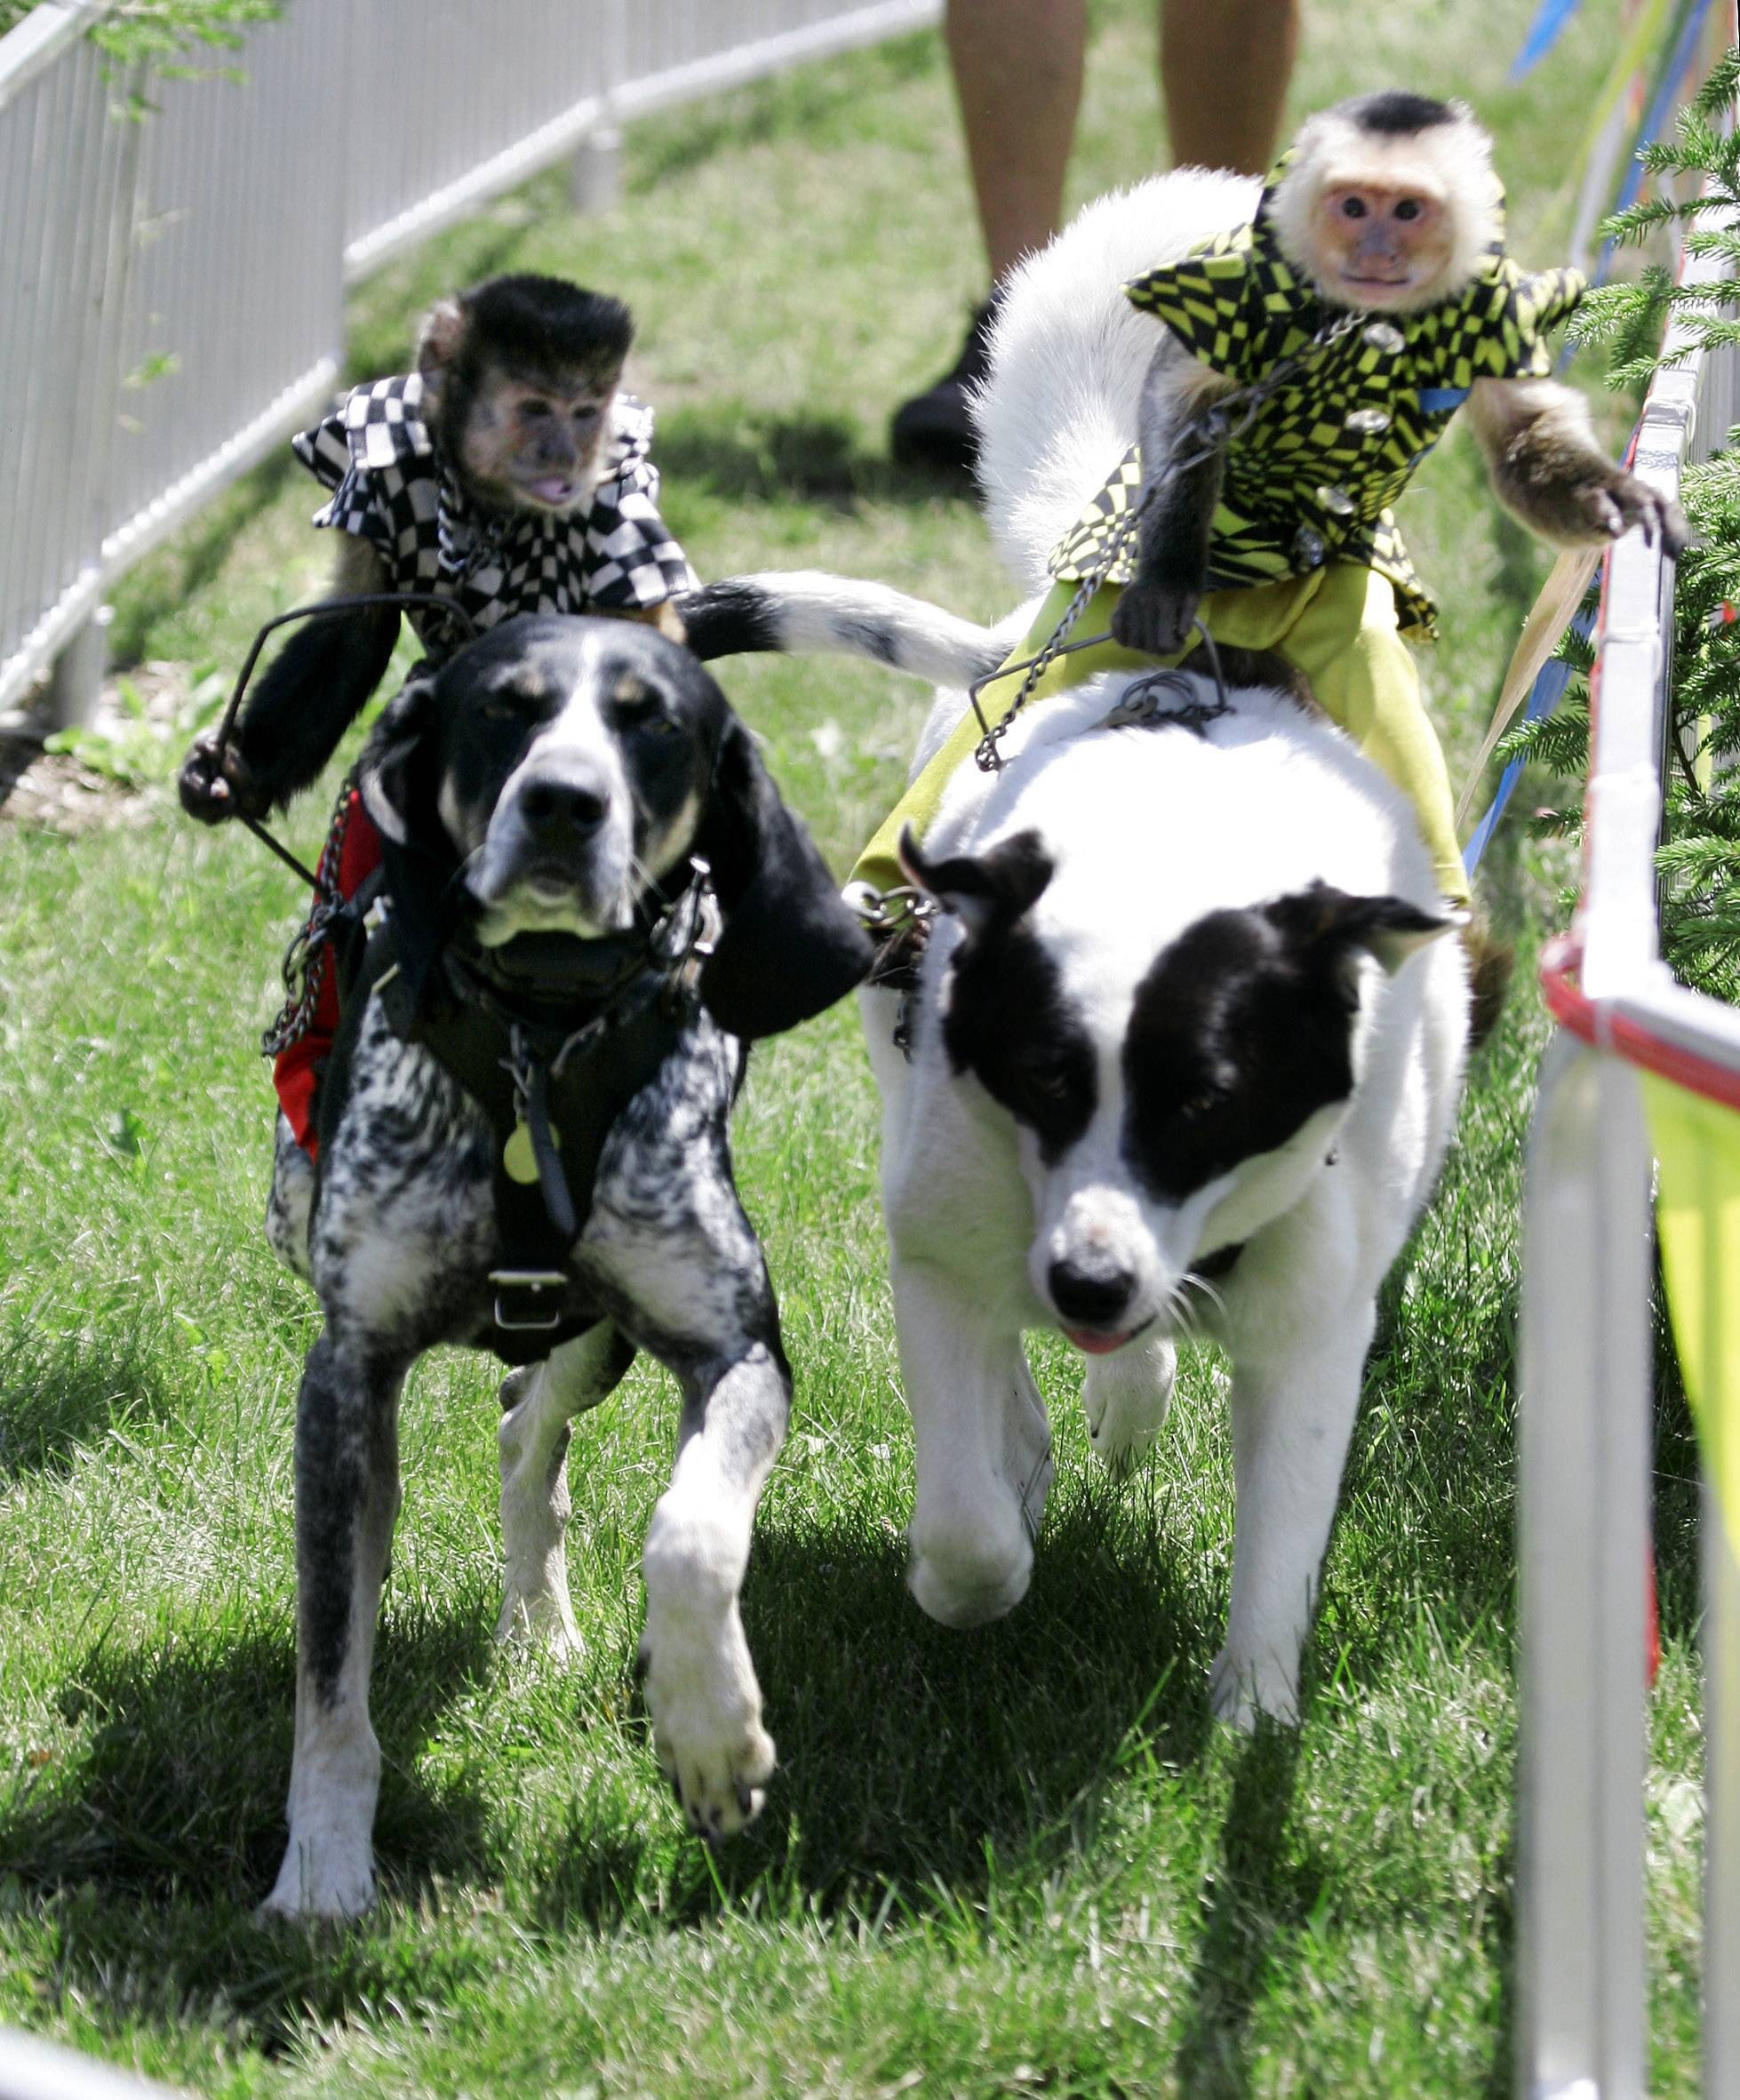 The Banana Derby -- racing dogs, monkey jockeys -- has become a Lake County Fair favorite.